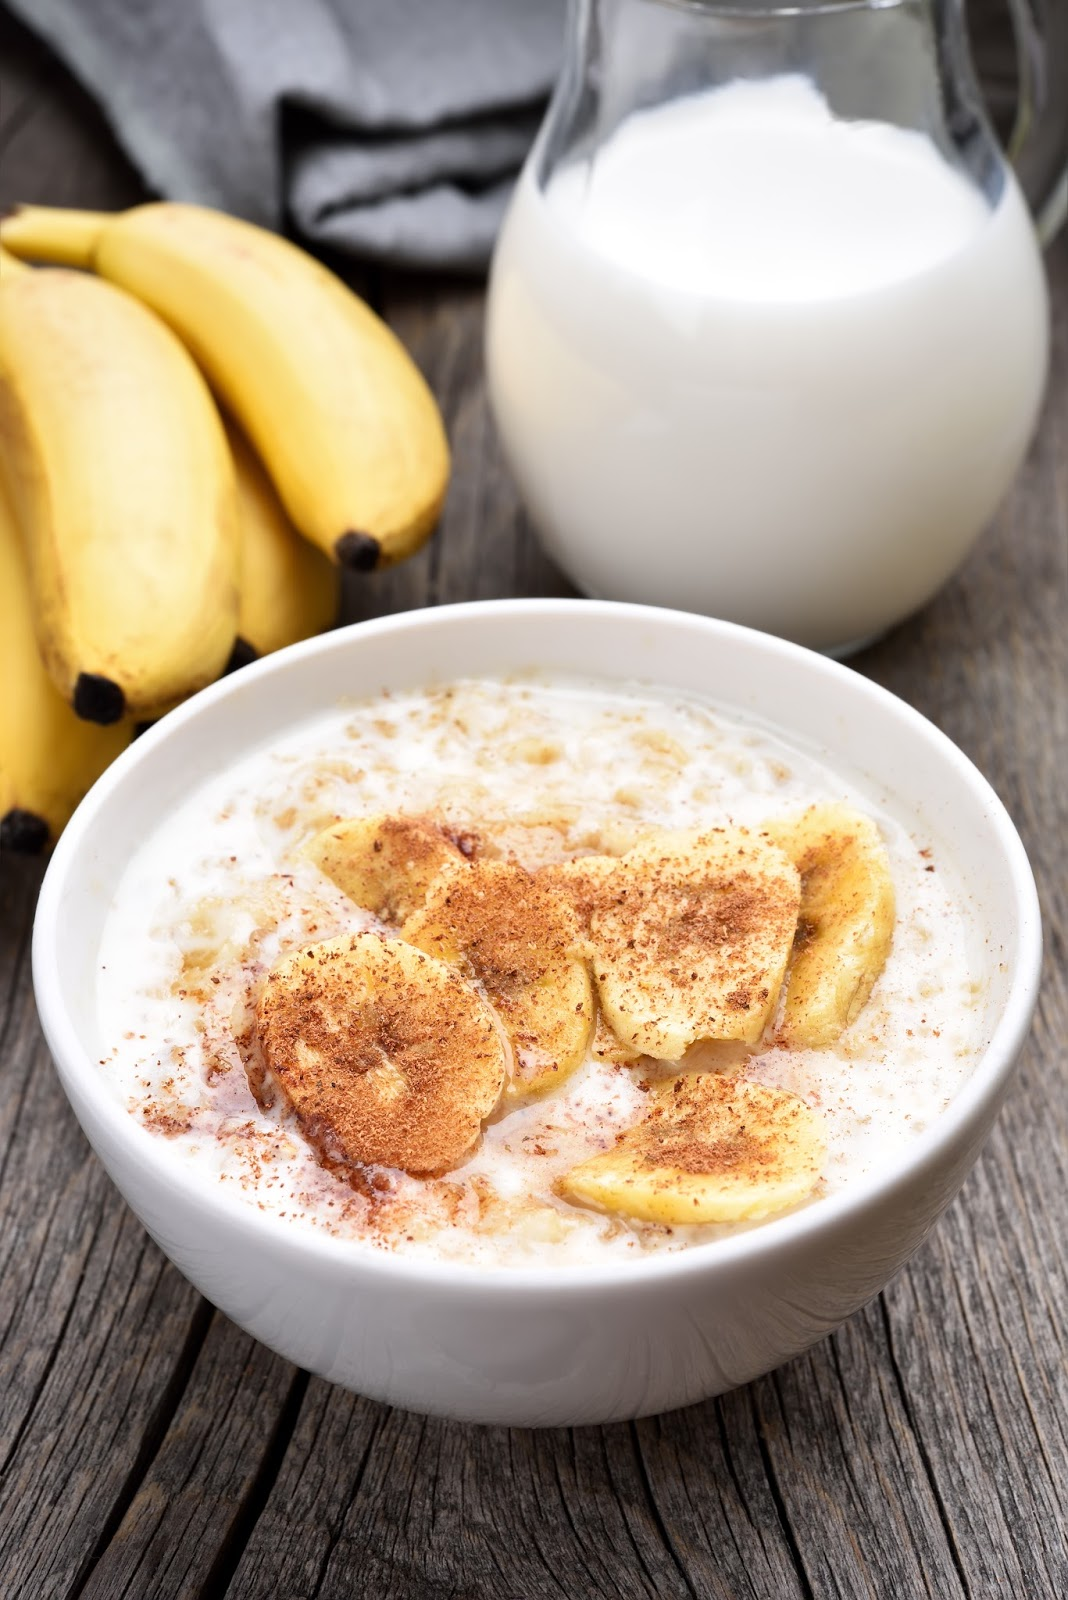 ... University Low FODMAP Diet: Quinoa Porridge with Banana & Yoghurt